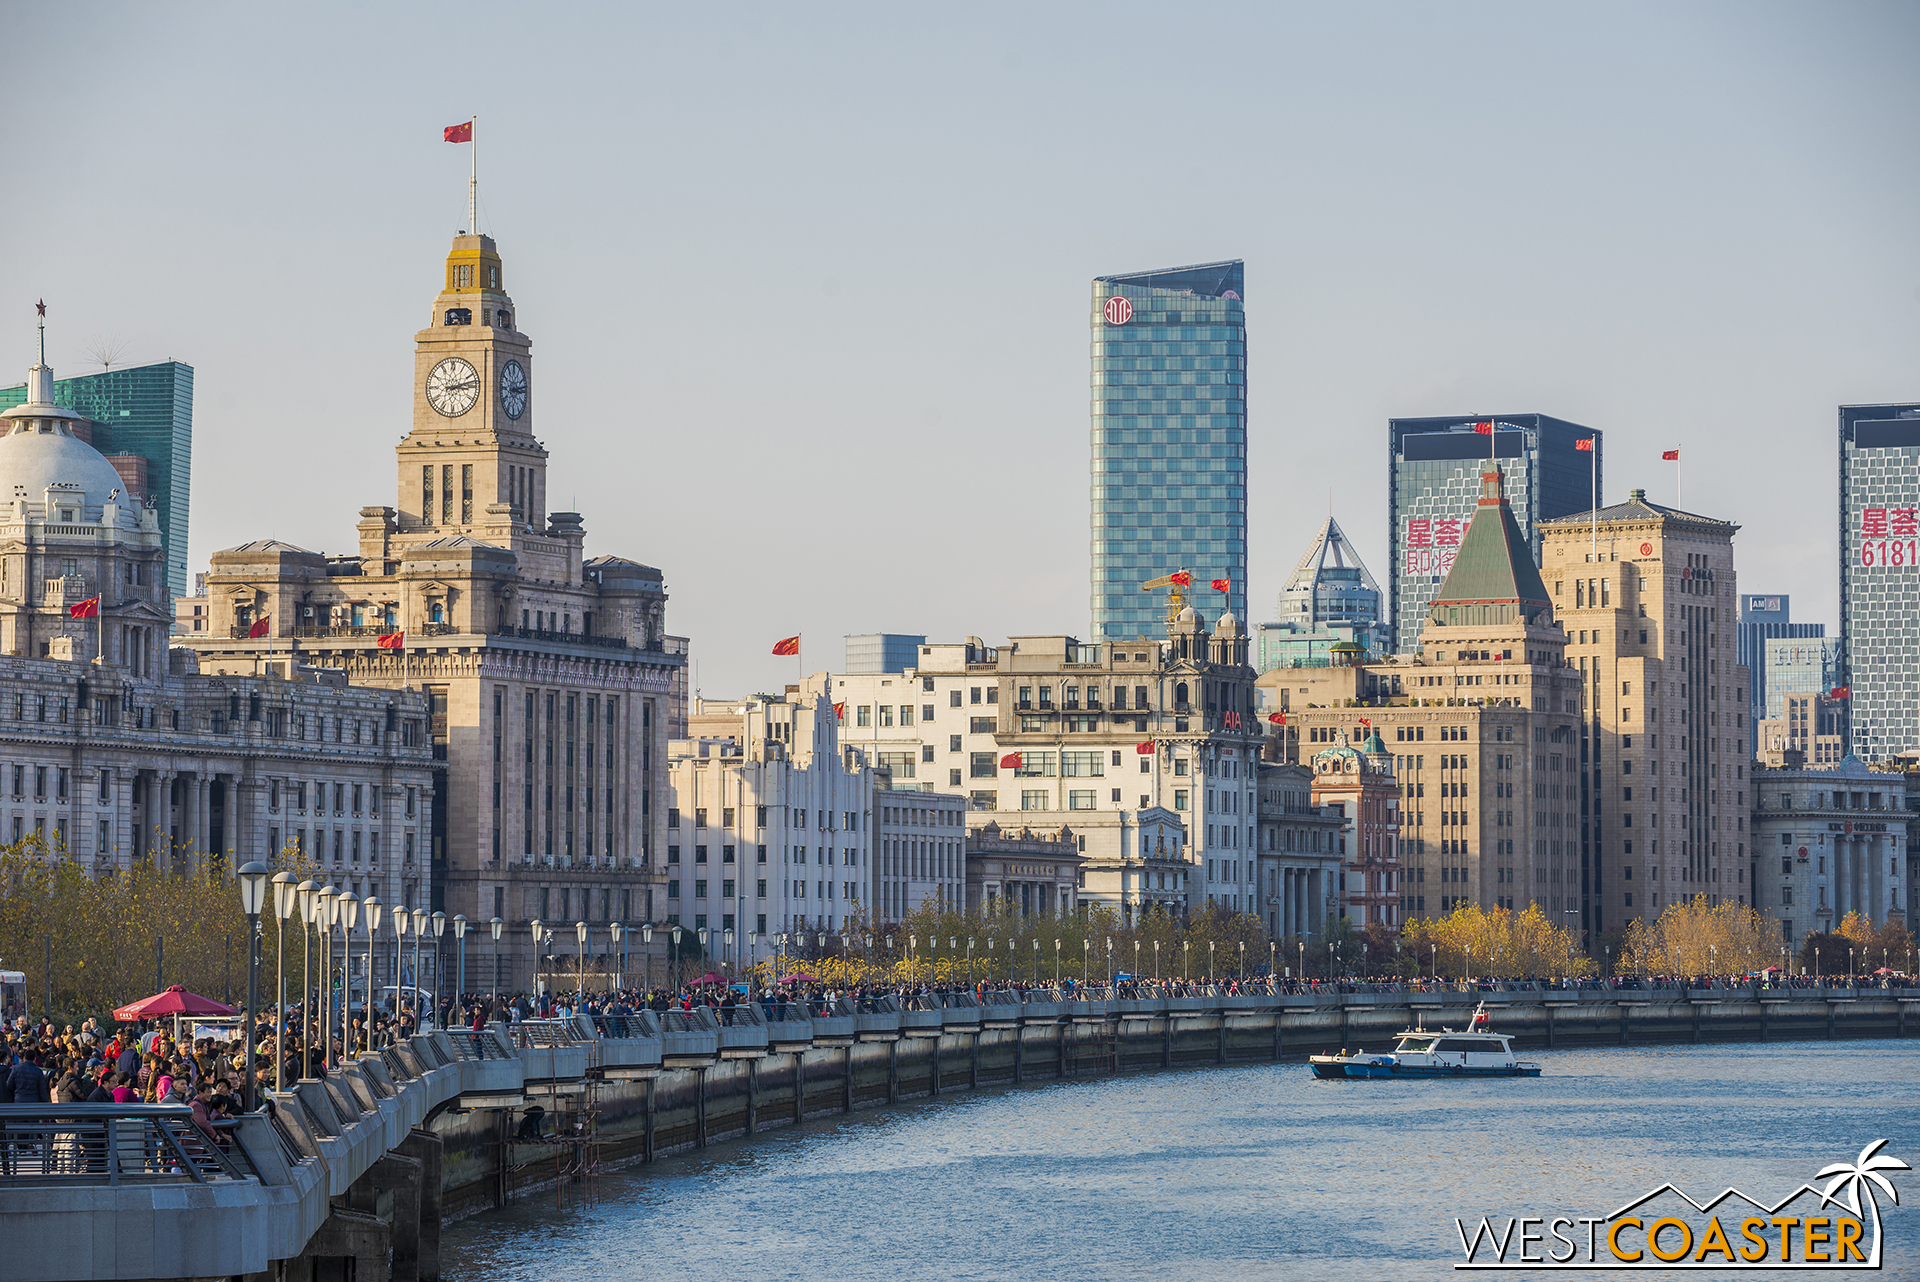 The Bund, on the west side of the Huangpu River, is old Shanghai and filled with classical European influences stemming from 19th century imperialism.